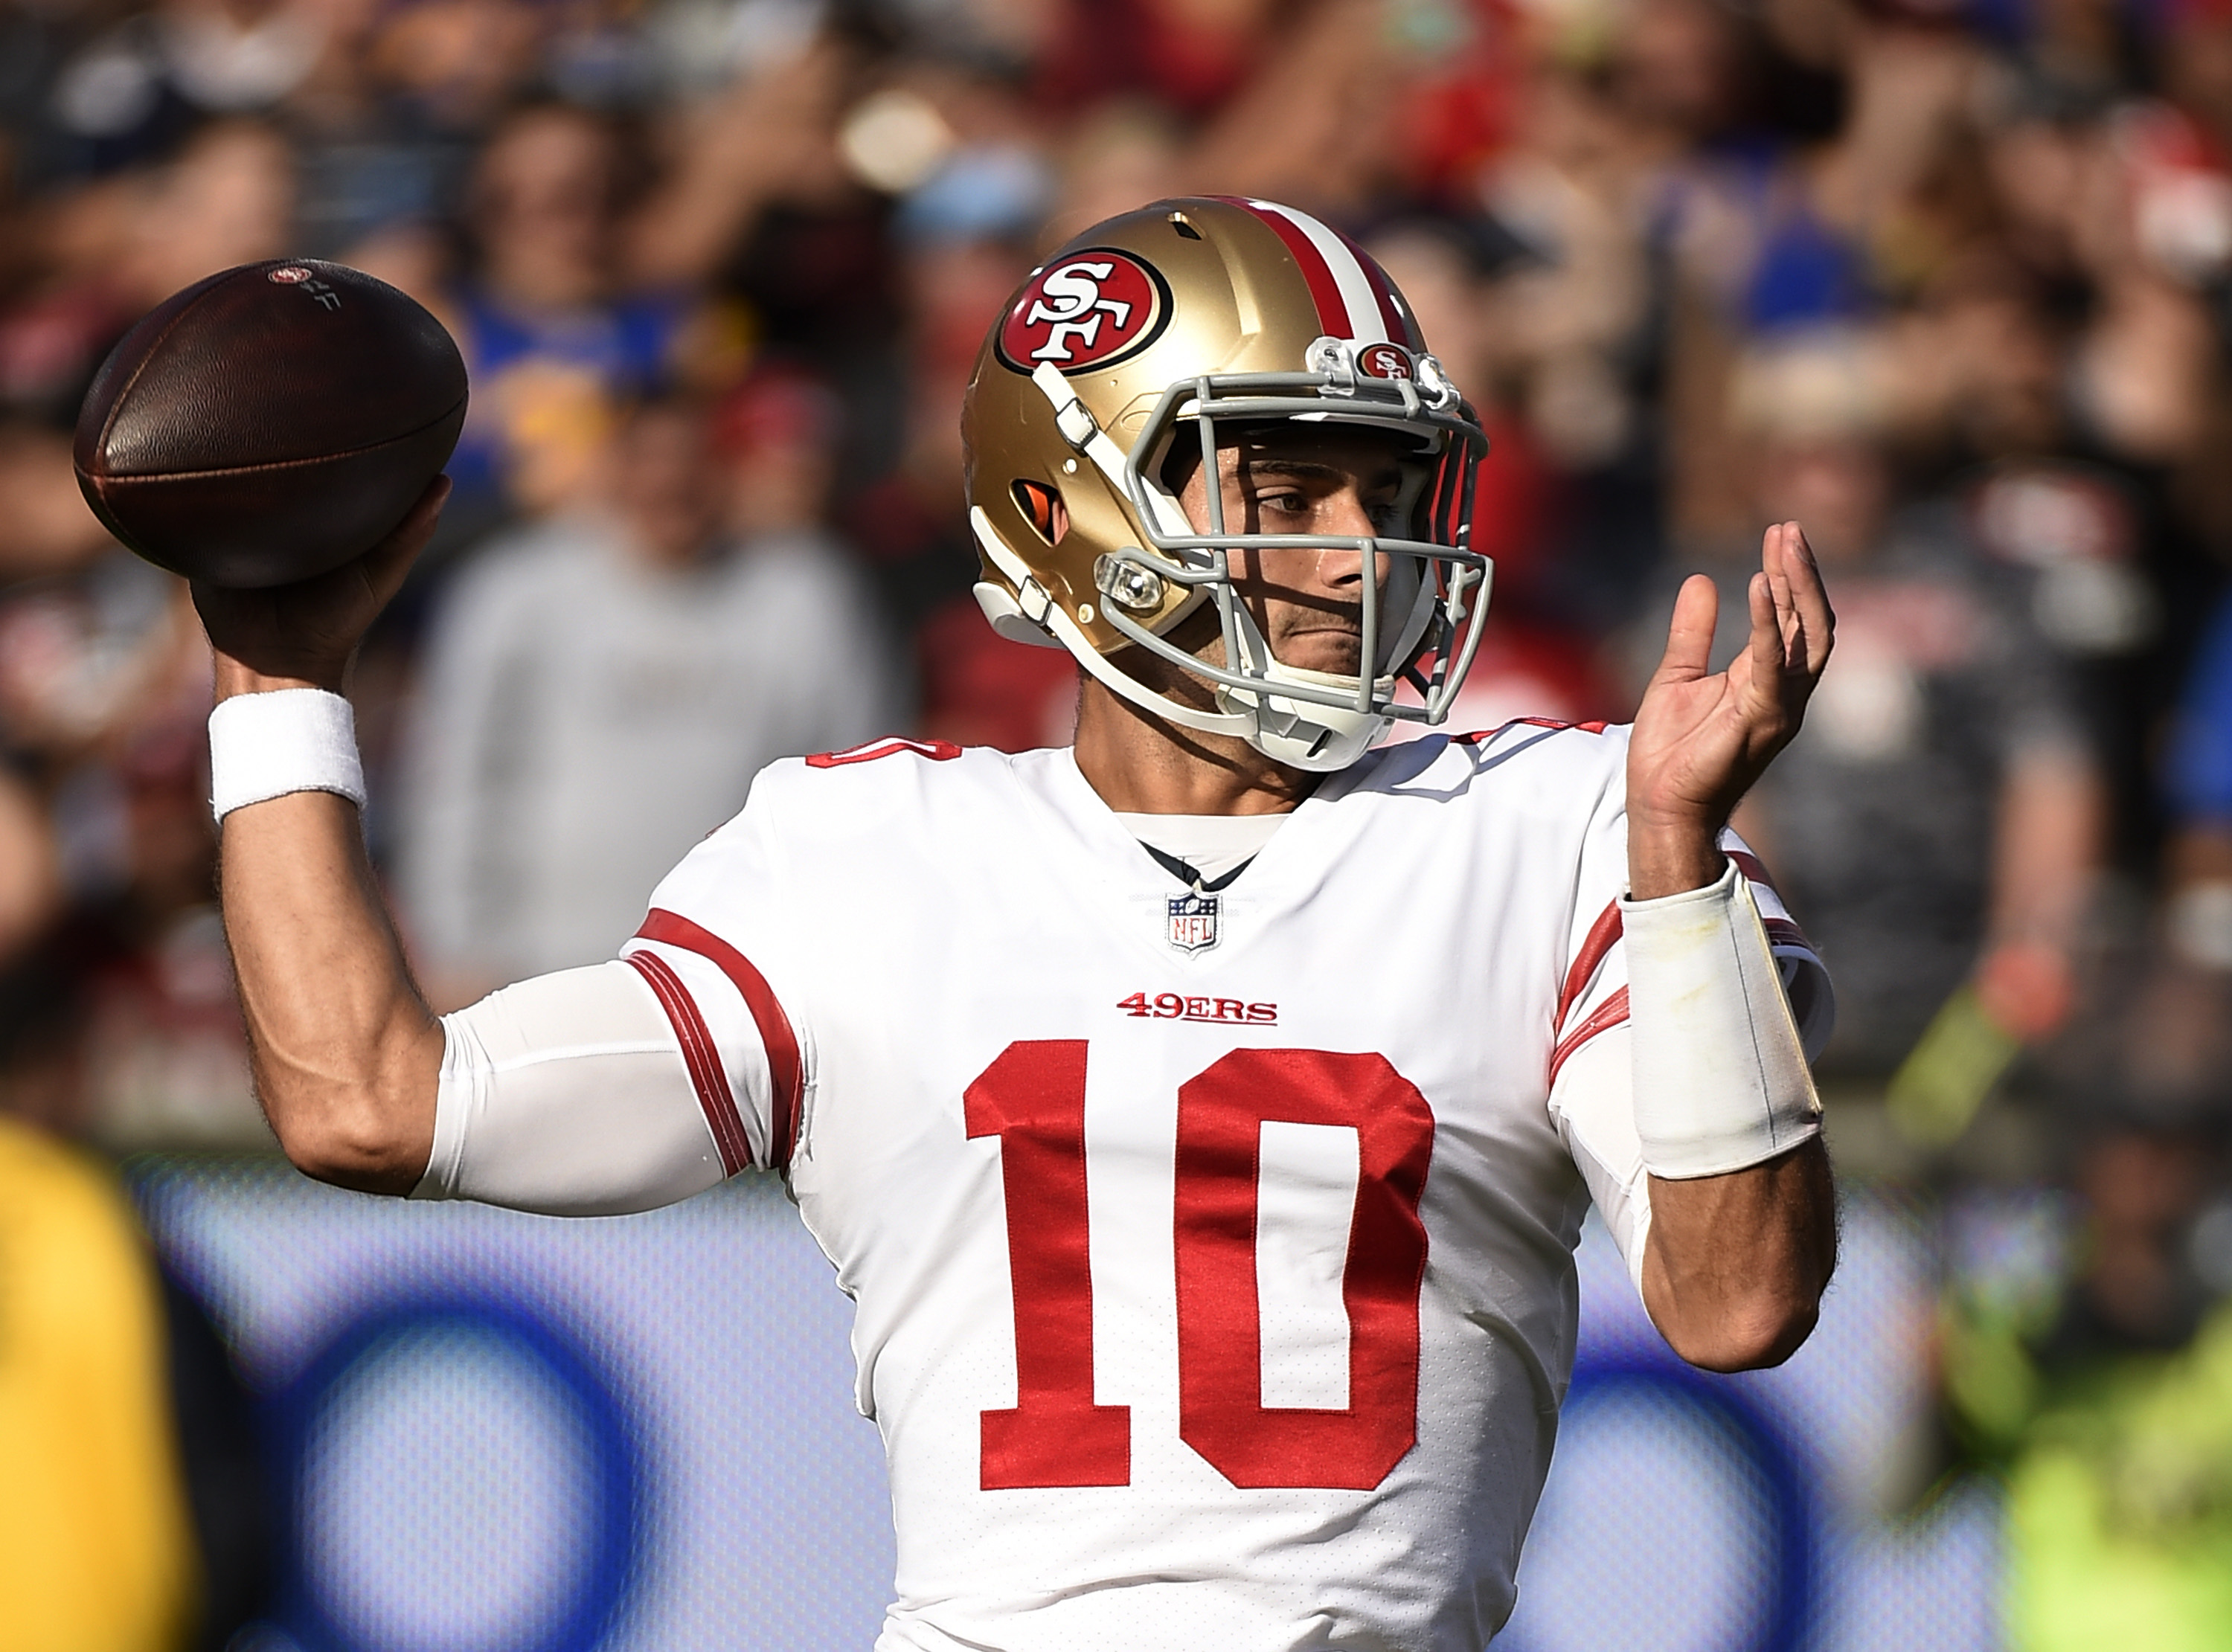 49ers sign Garoppolo to $137.5M deal